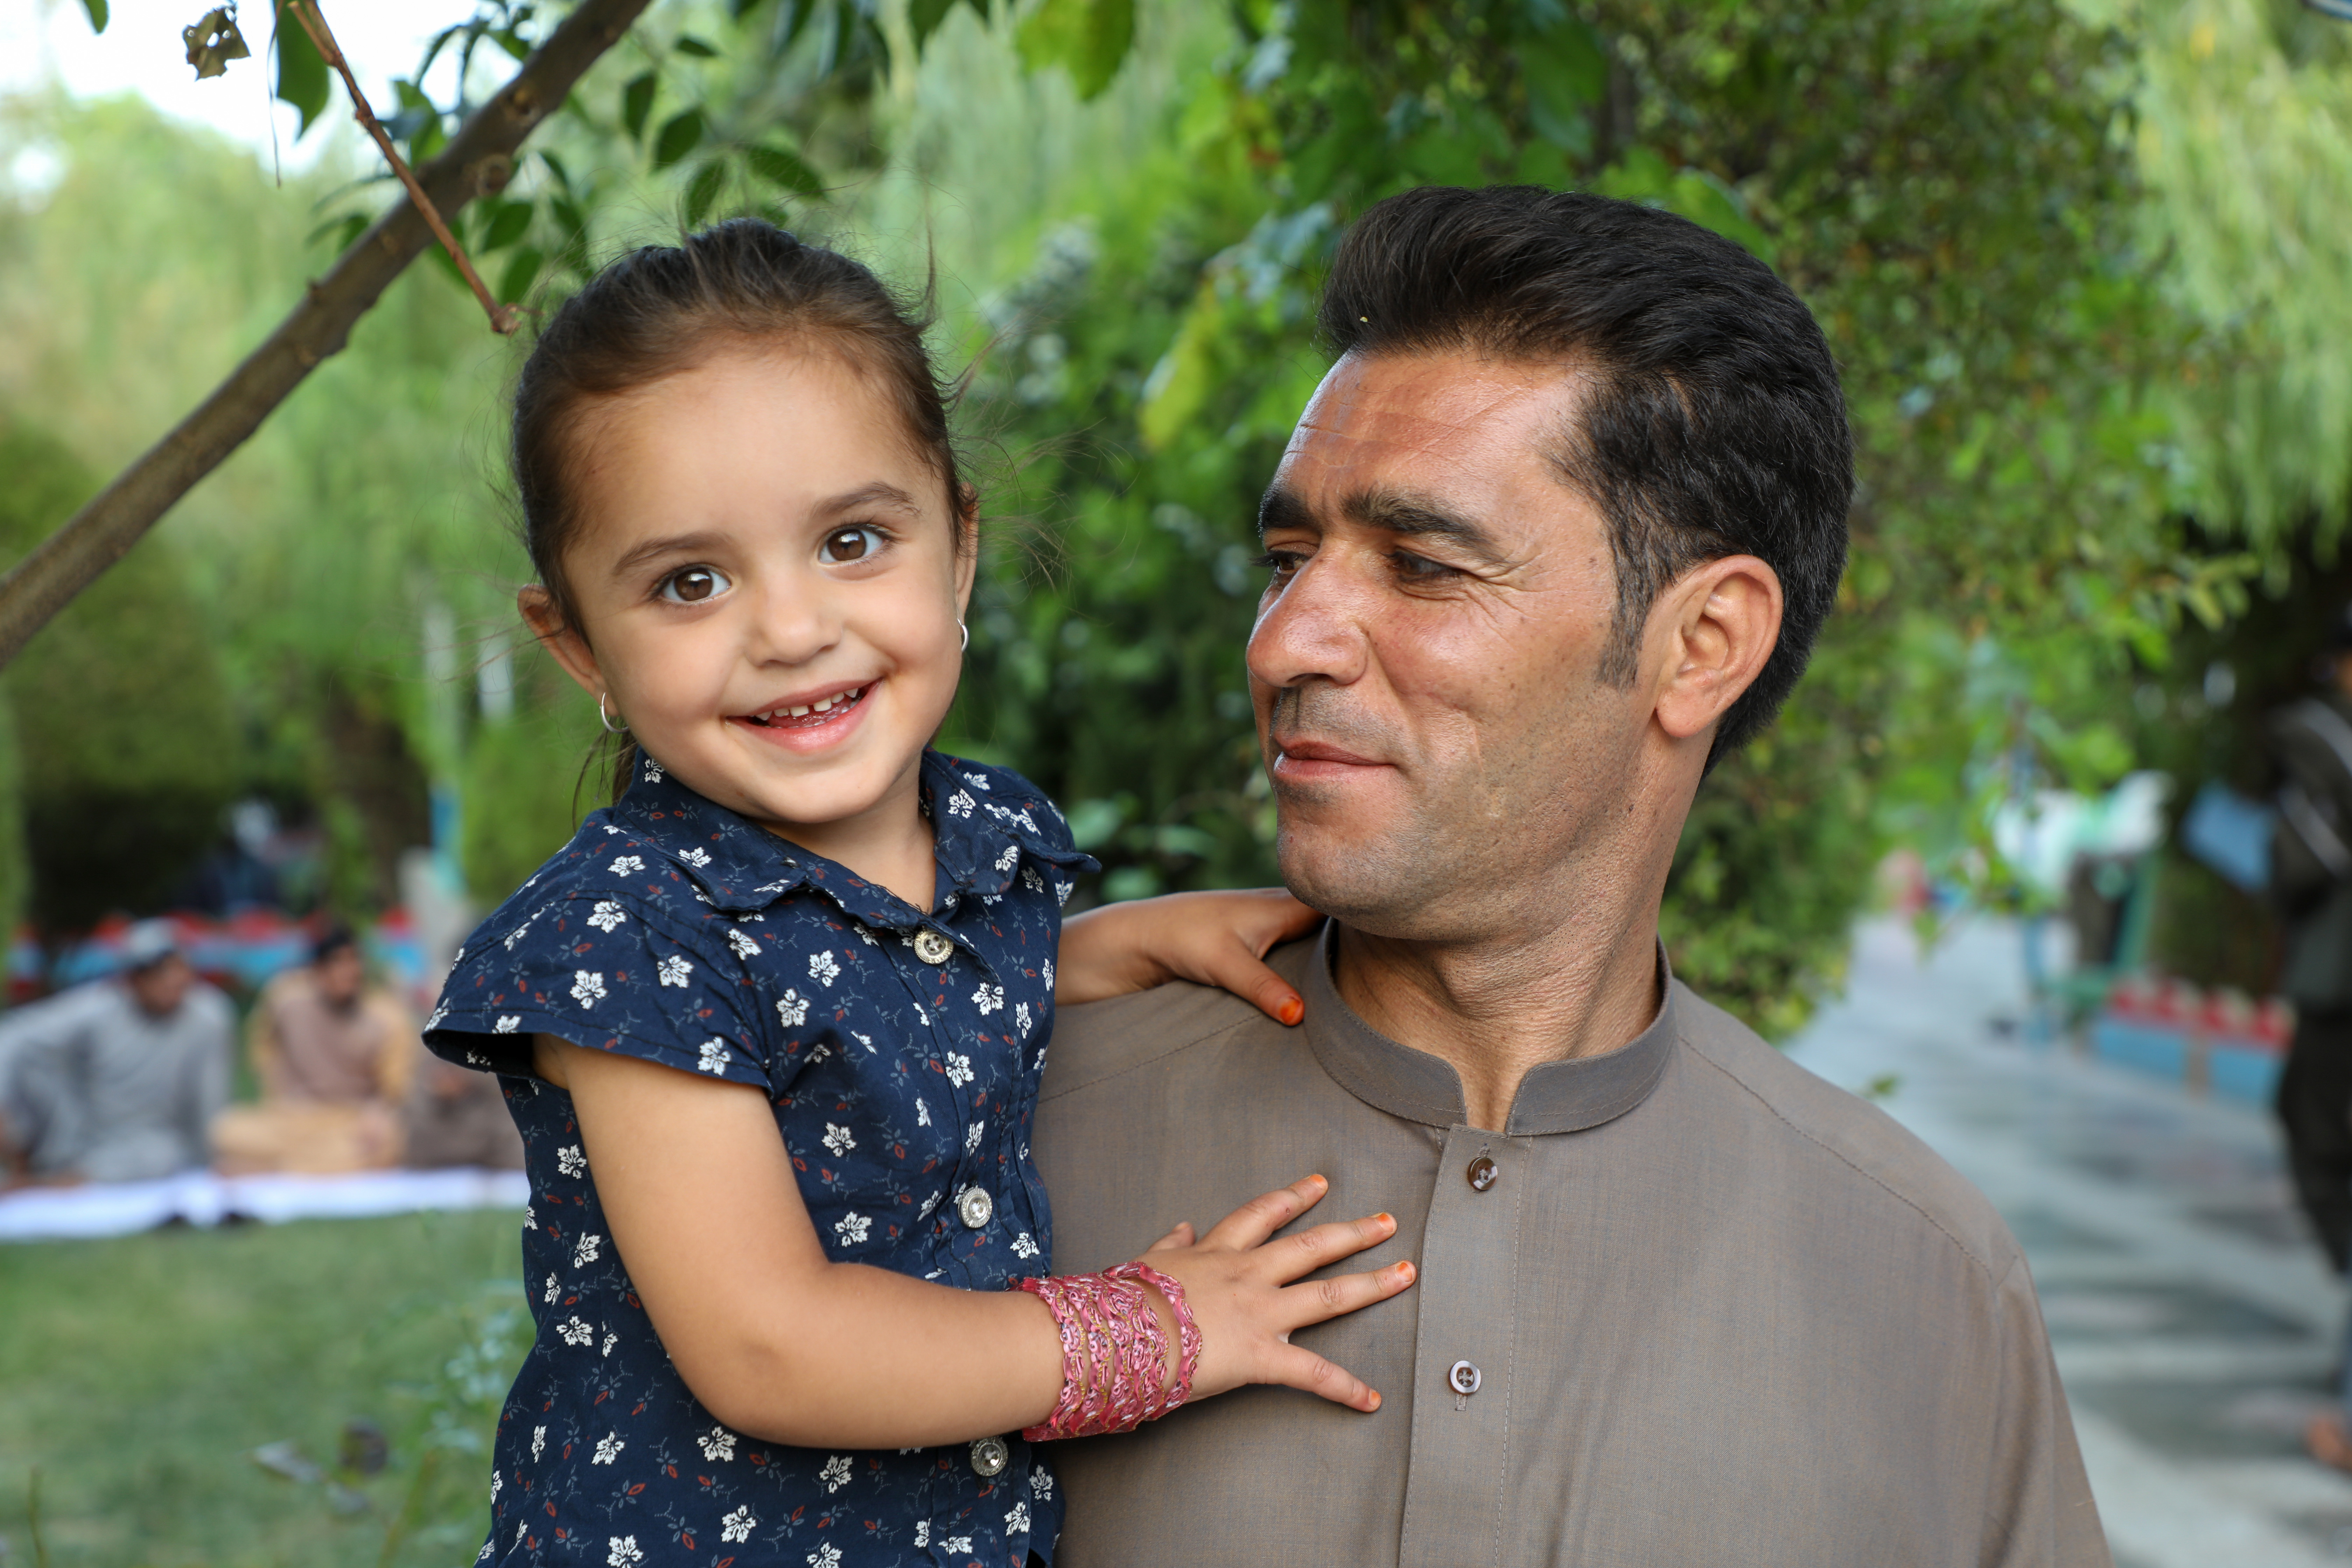 When the Afghanistan government announced the reopening of the country after the COVID-19 lockdown, Rahimullah and his daughter Rahila, 7, headed to the park.